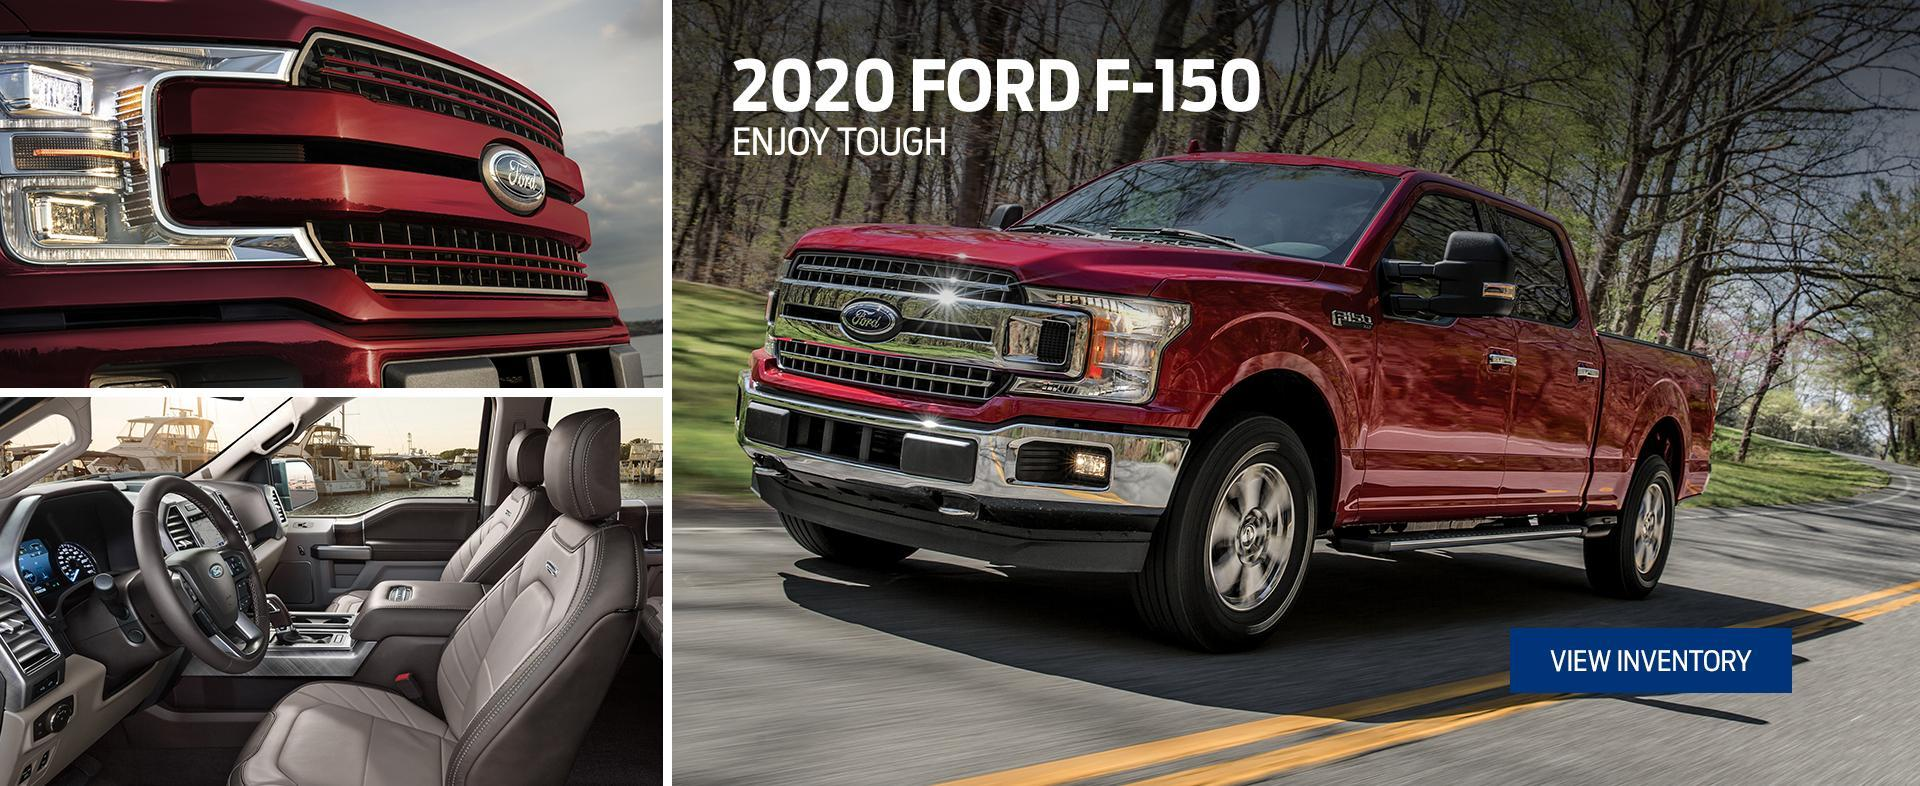 Ford Home 2020 F-150